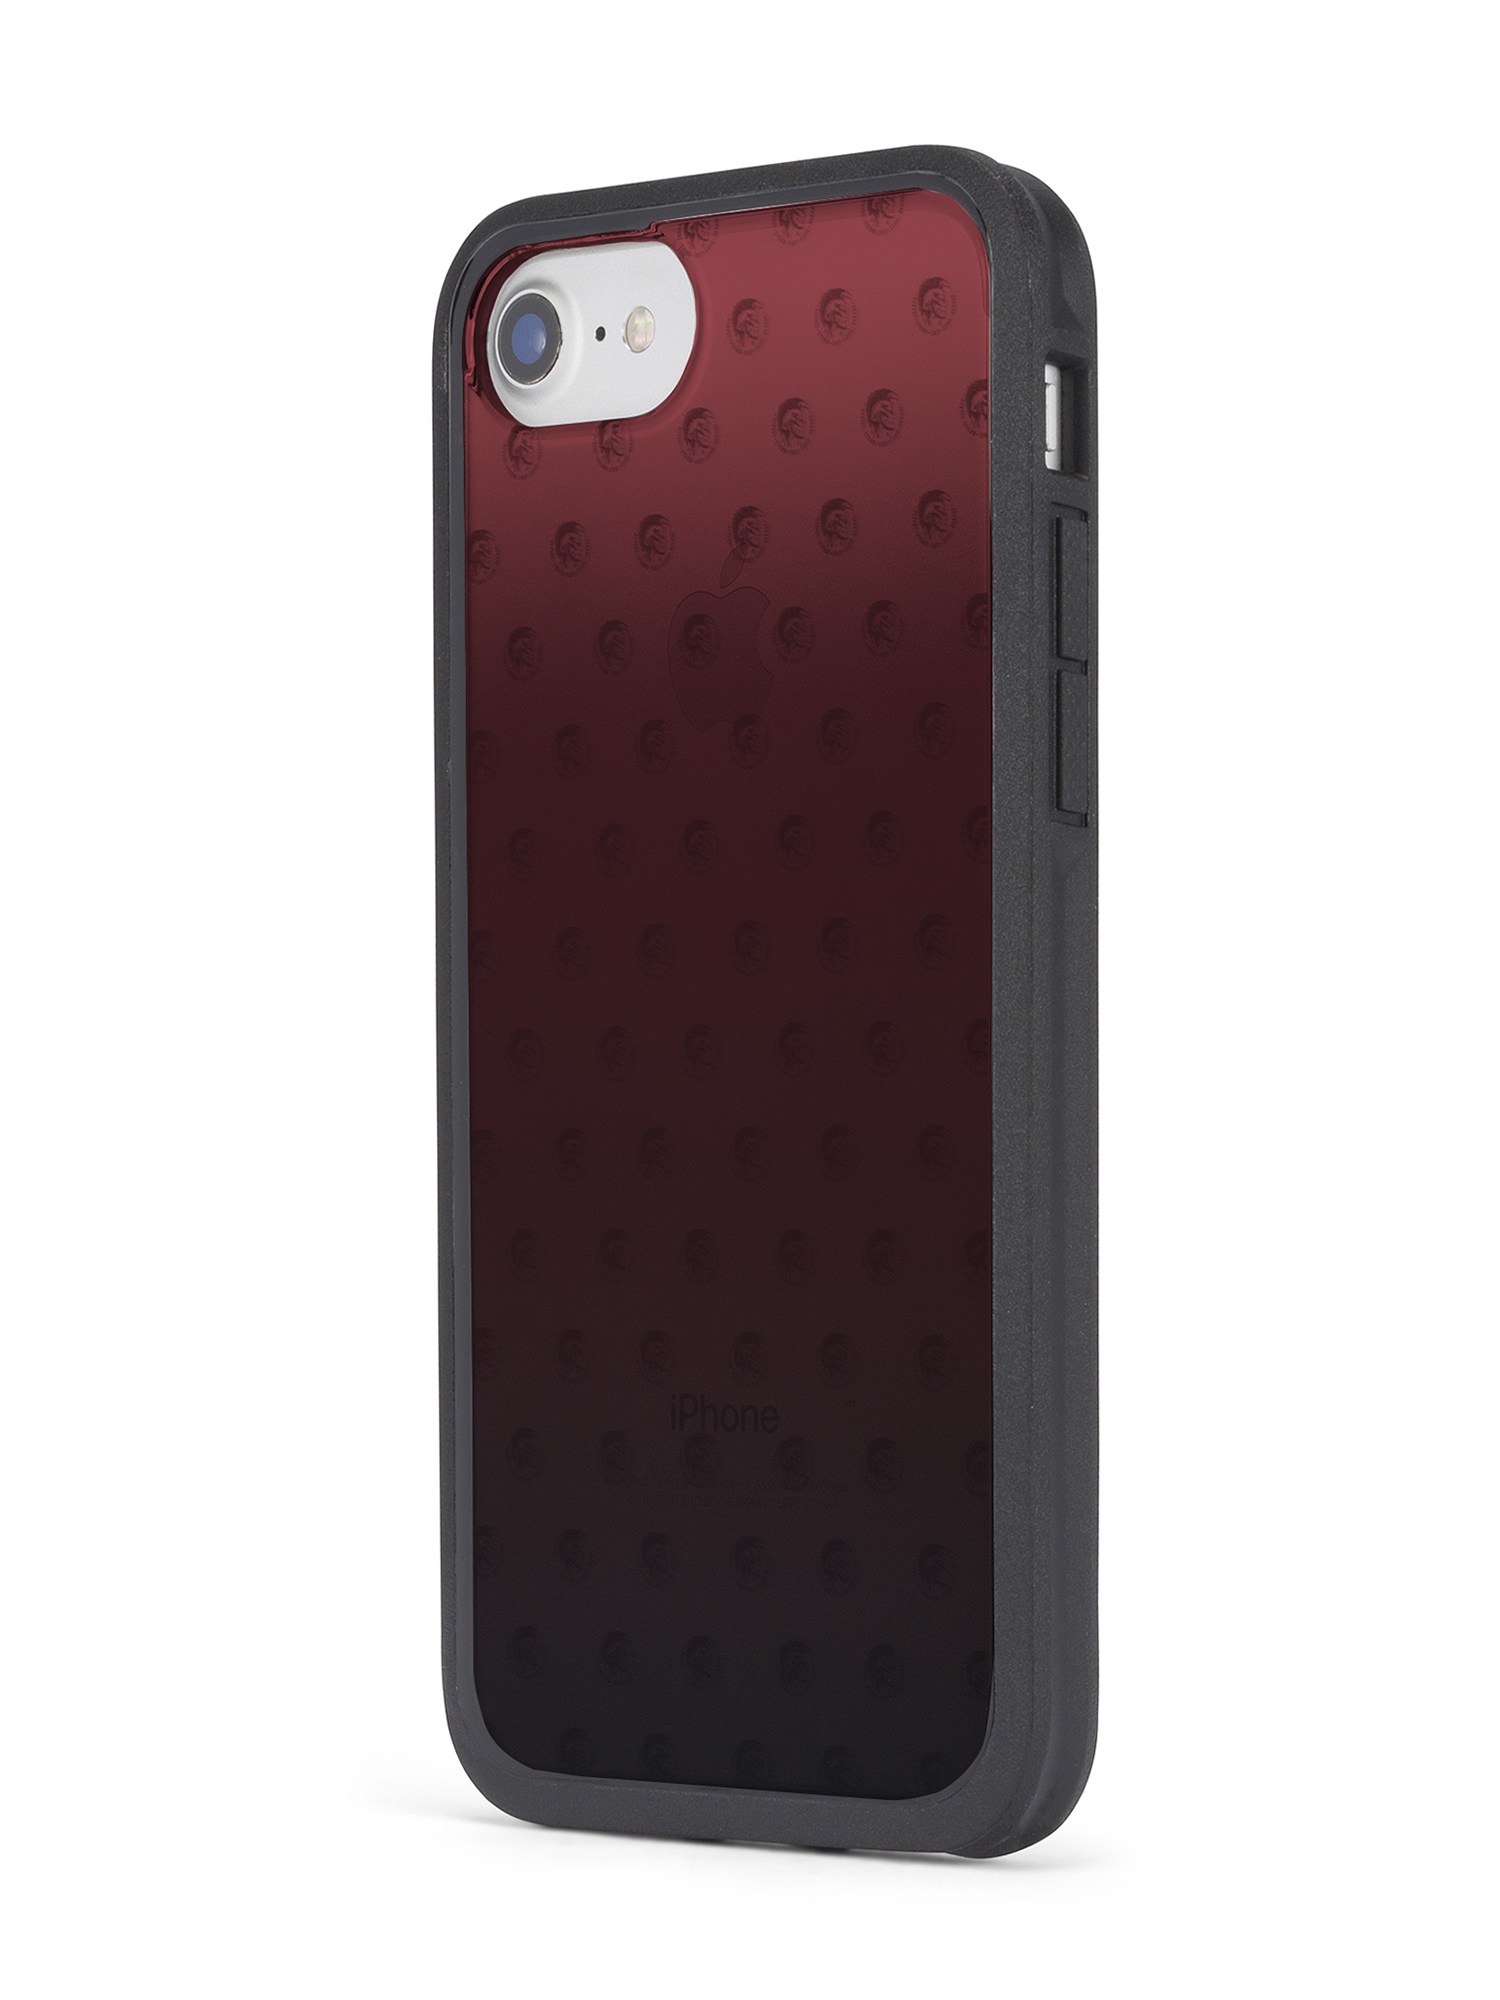 Diesel - MOHICAN HEAD DOTS RED IPHONE 8 PLUS/7 PLUS/6s PLUS/6 PLUS CASE,  - Cases - Image 6